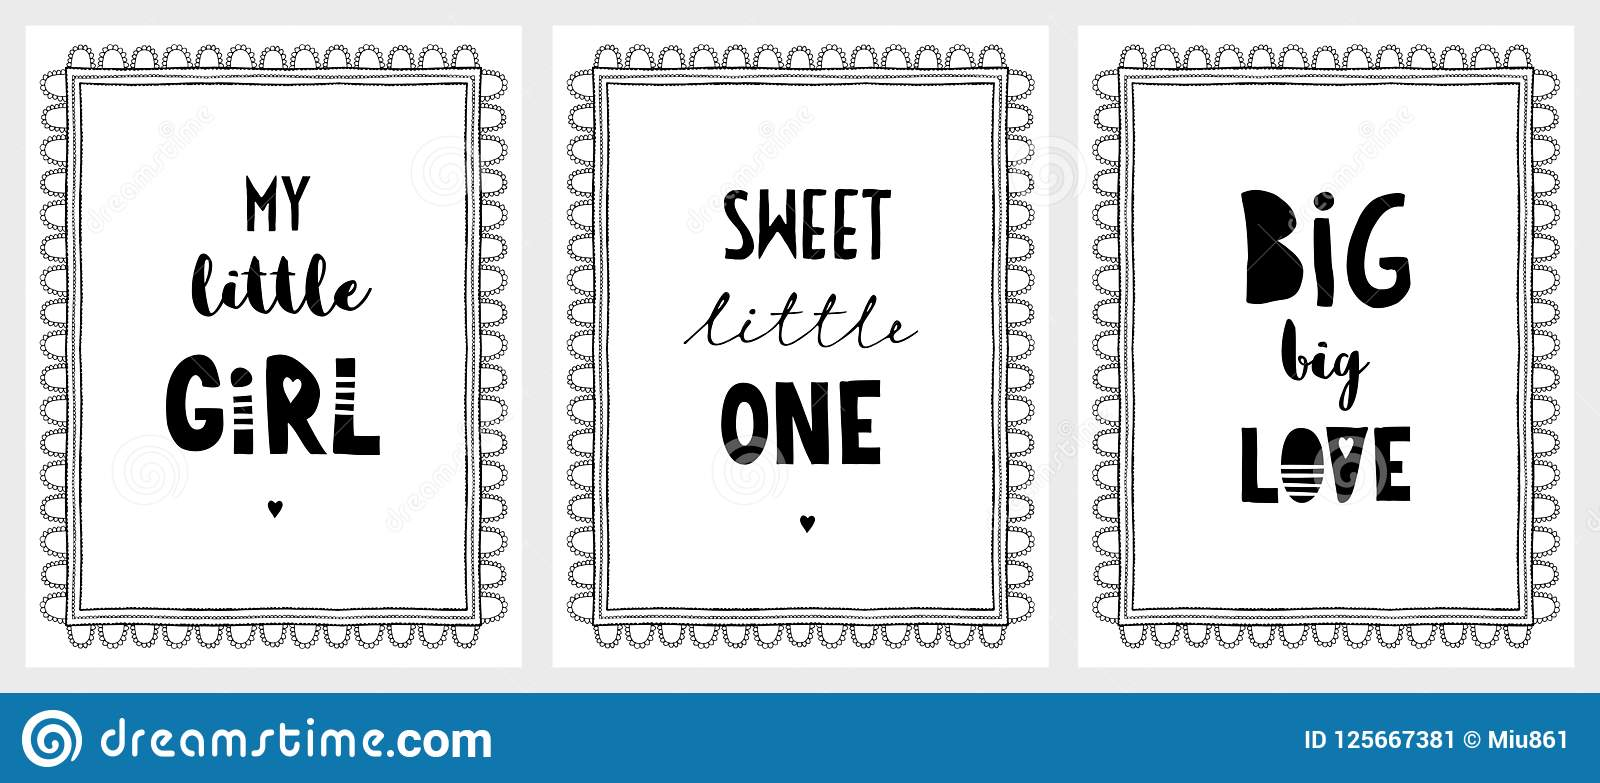 My Little Girl, Big Love And Sweet Little One Posters  Stock